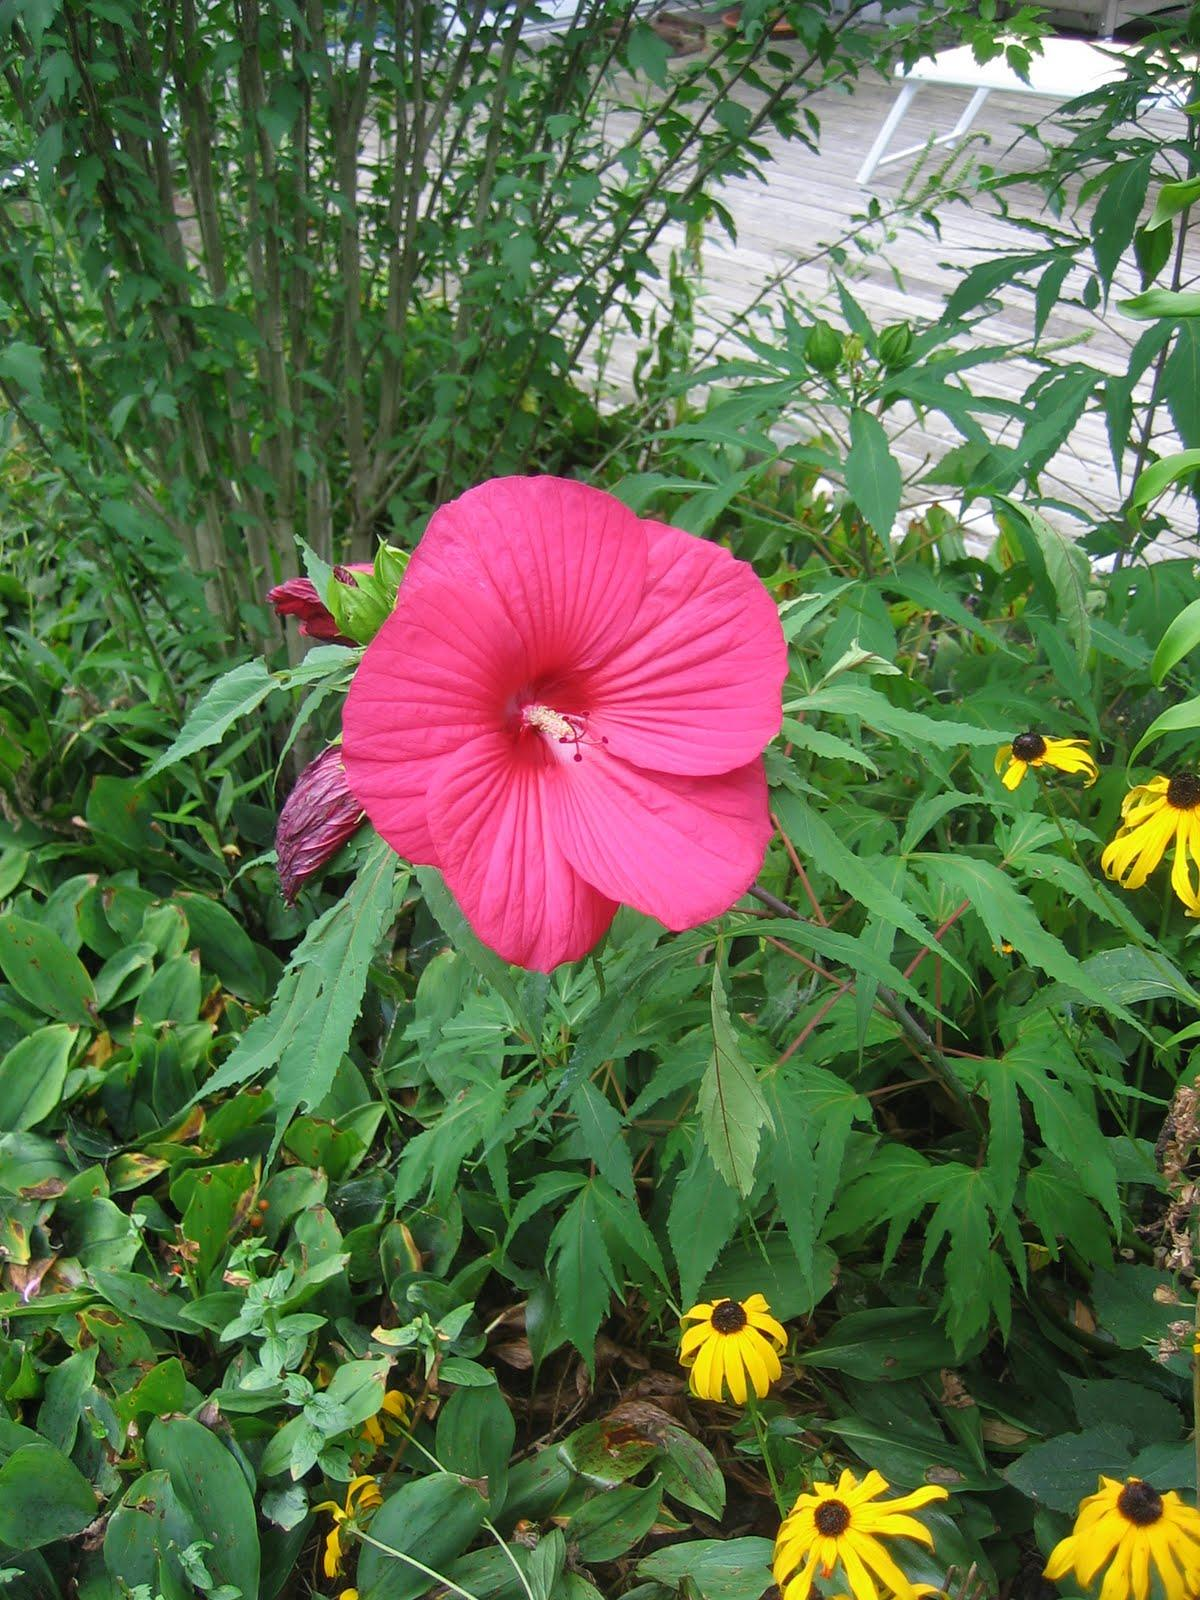 Swamp hibiscus plant info how to grow rose mallow hibiscus dummer crowding the plant inhibits air circulation which may result in leaf spots rust or other diseases swamp hibiscus care izmirmasajfo